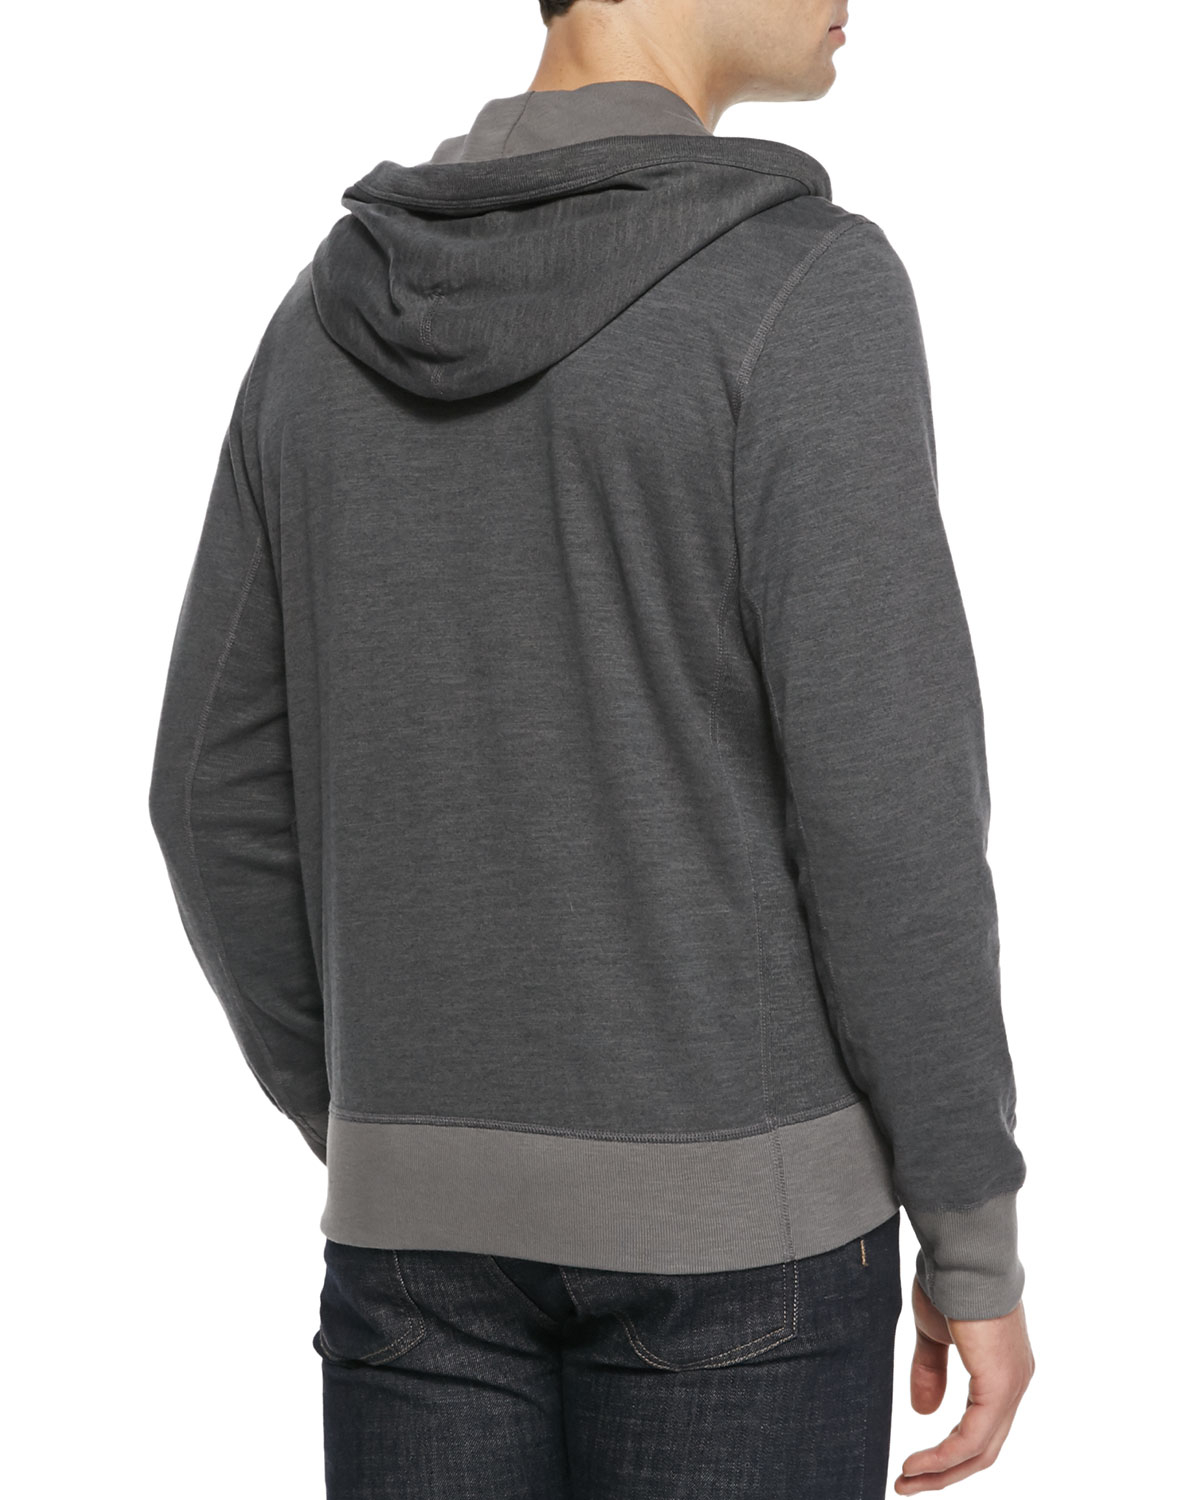 Zippered Hoodie Knitting Pattern : Rag & bone Heathered Knit Zip Hoodie in Gray for Men Lyst